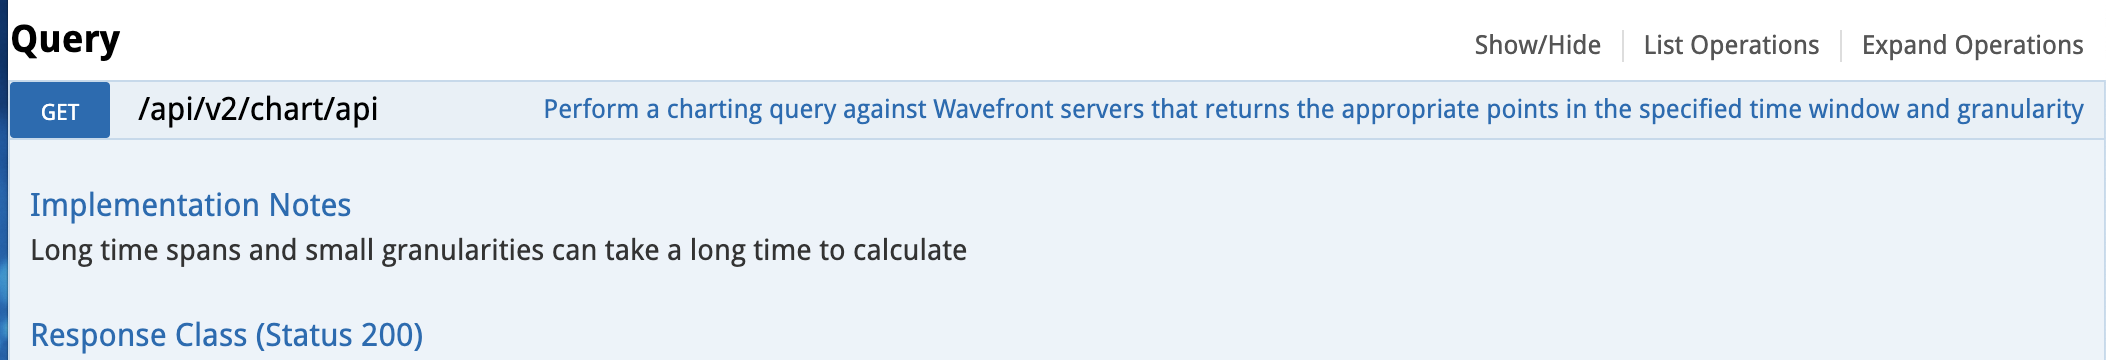 UI image showing where the API is on the Wavefront Swagger UI.